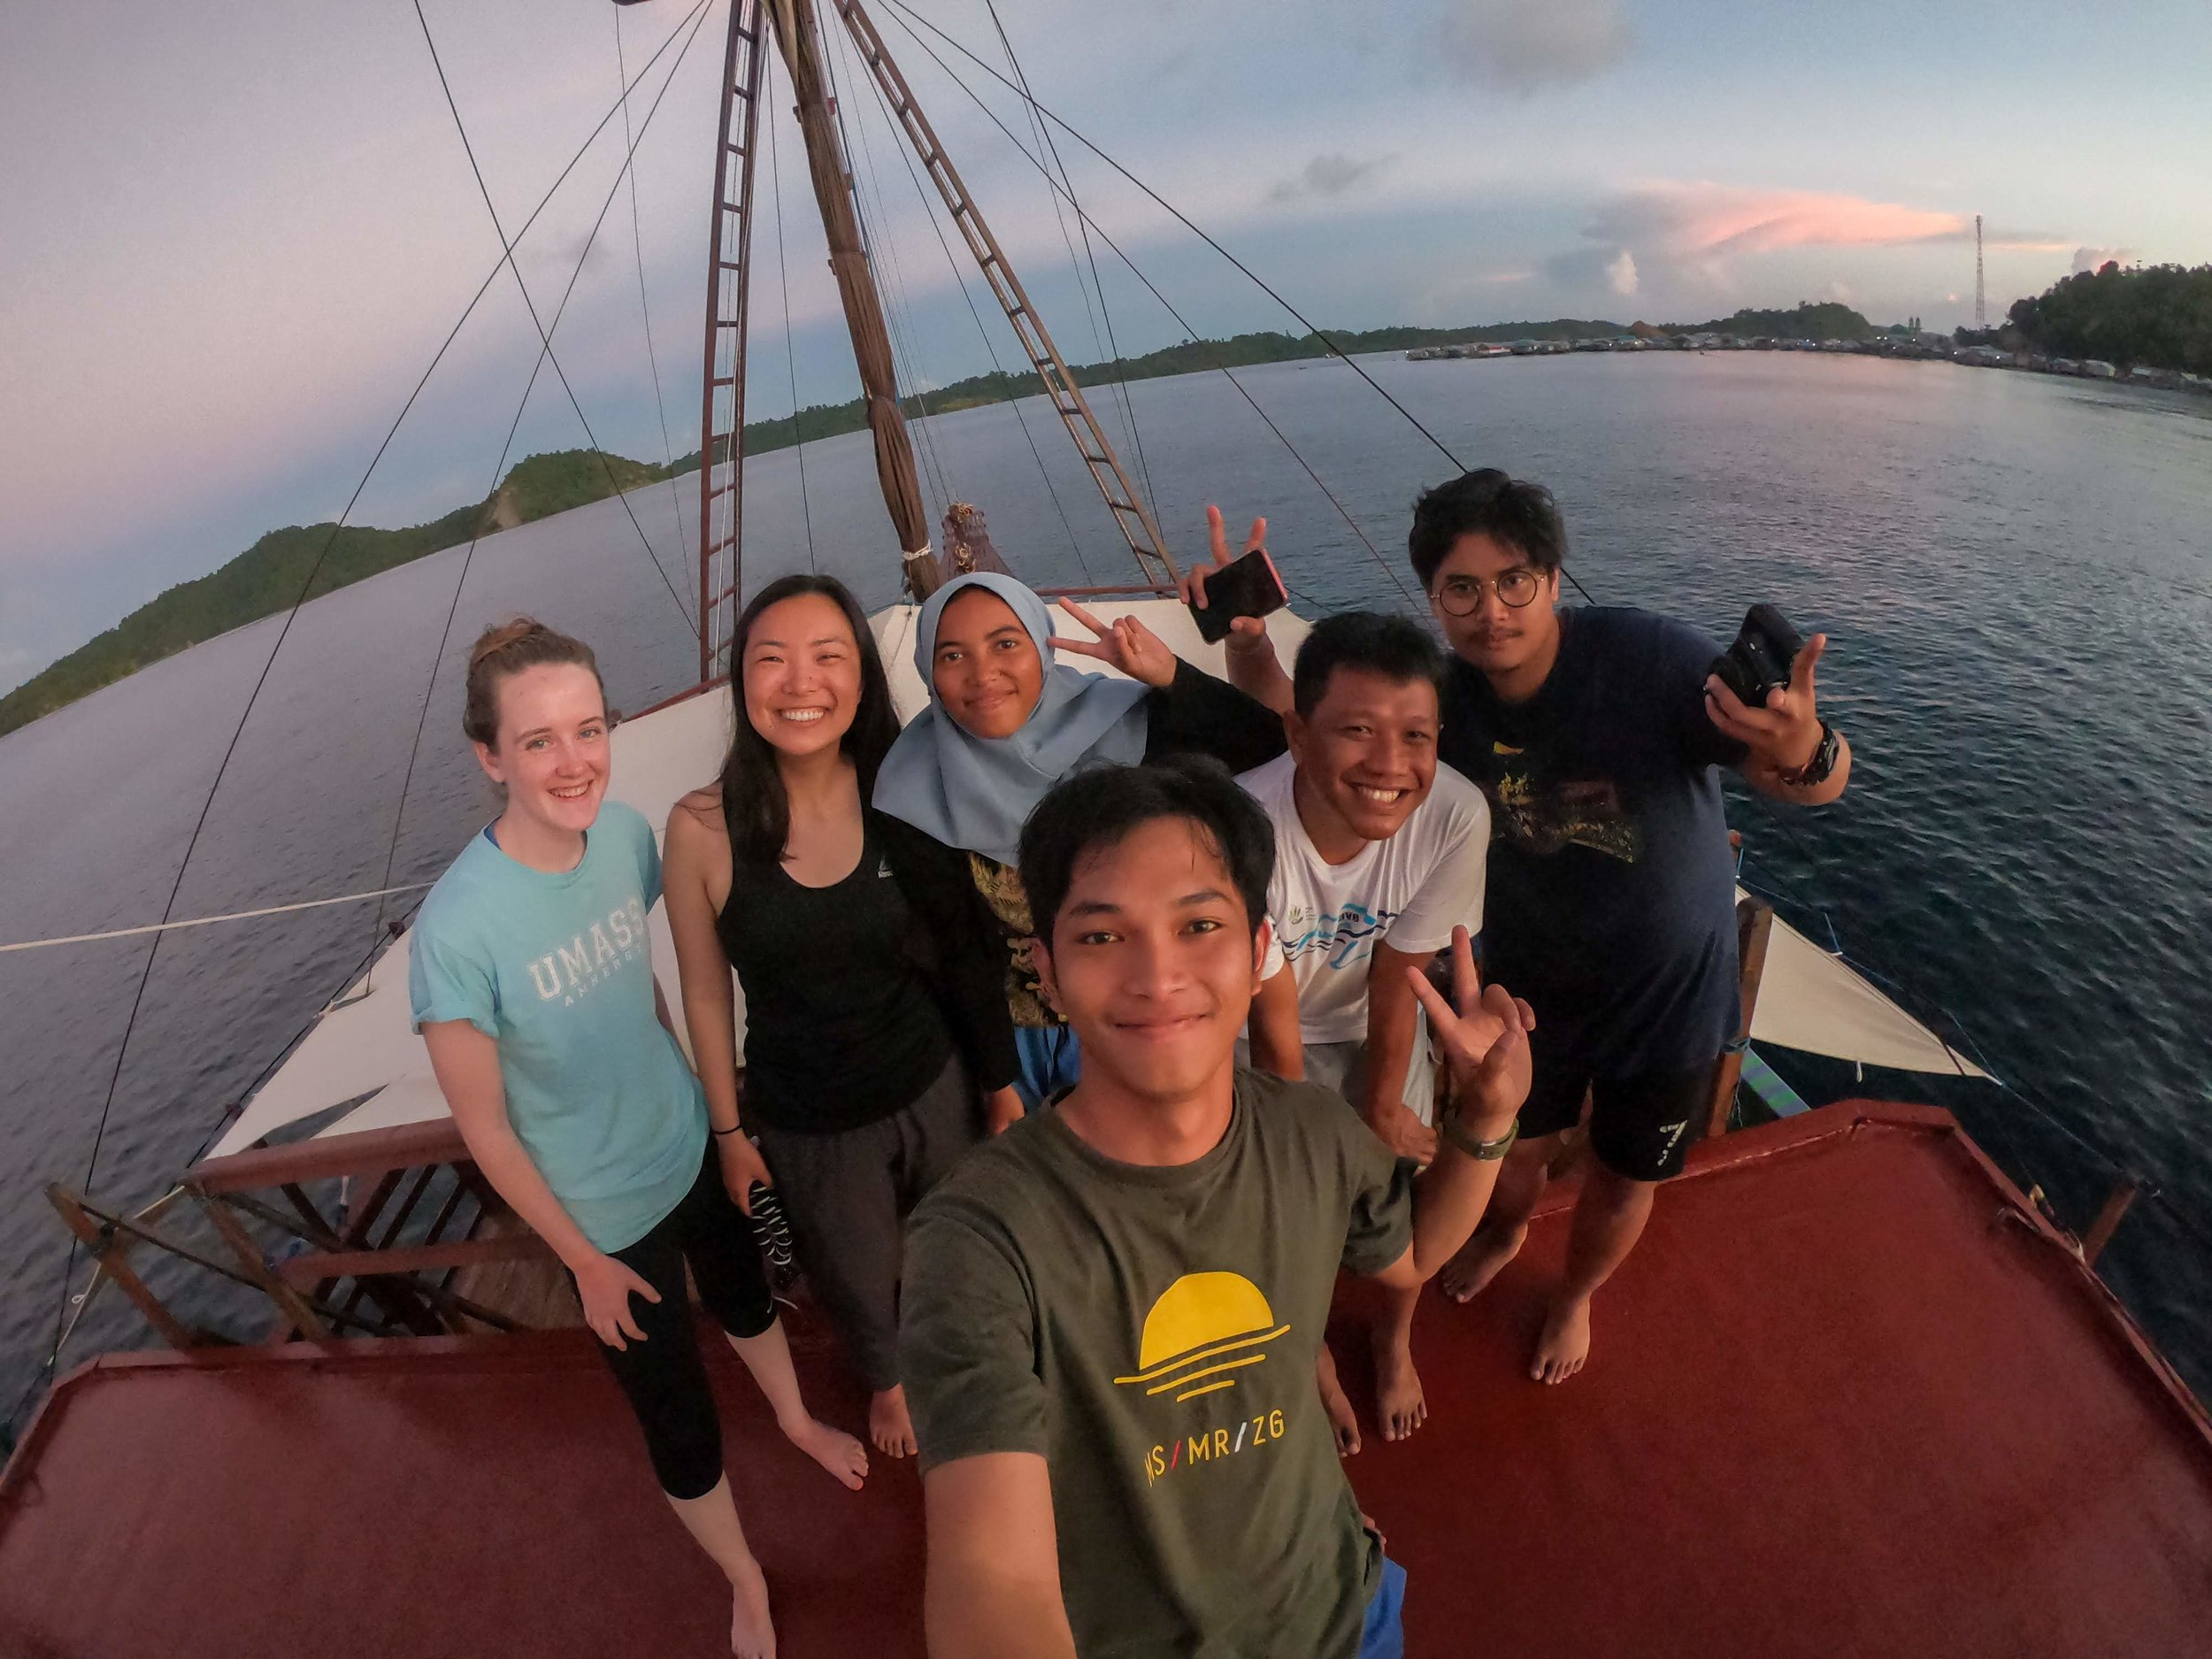 Graduate and undergraduate researchers (left to right) Erin, Elaine, Dije, Iqbal, Ubun, and Abby teamed up for fieldwork in Misool.